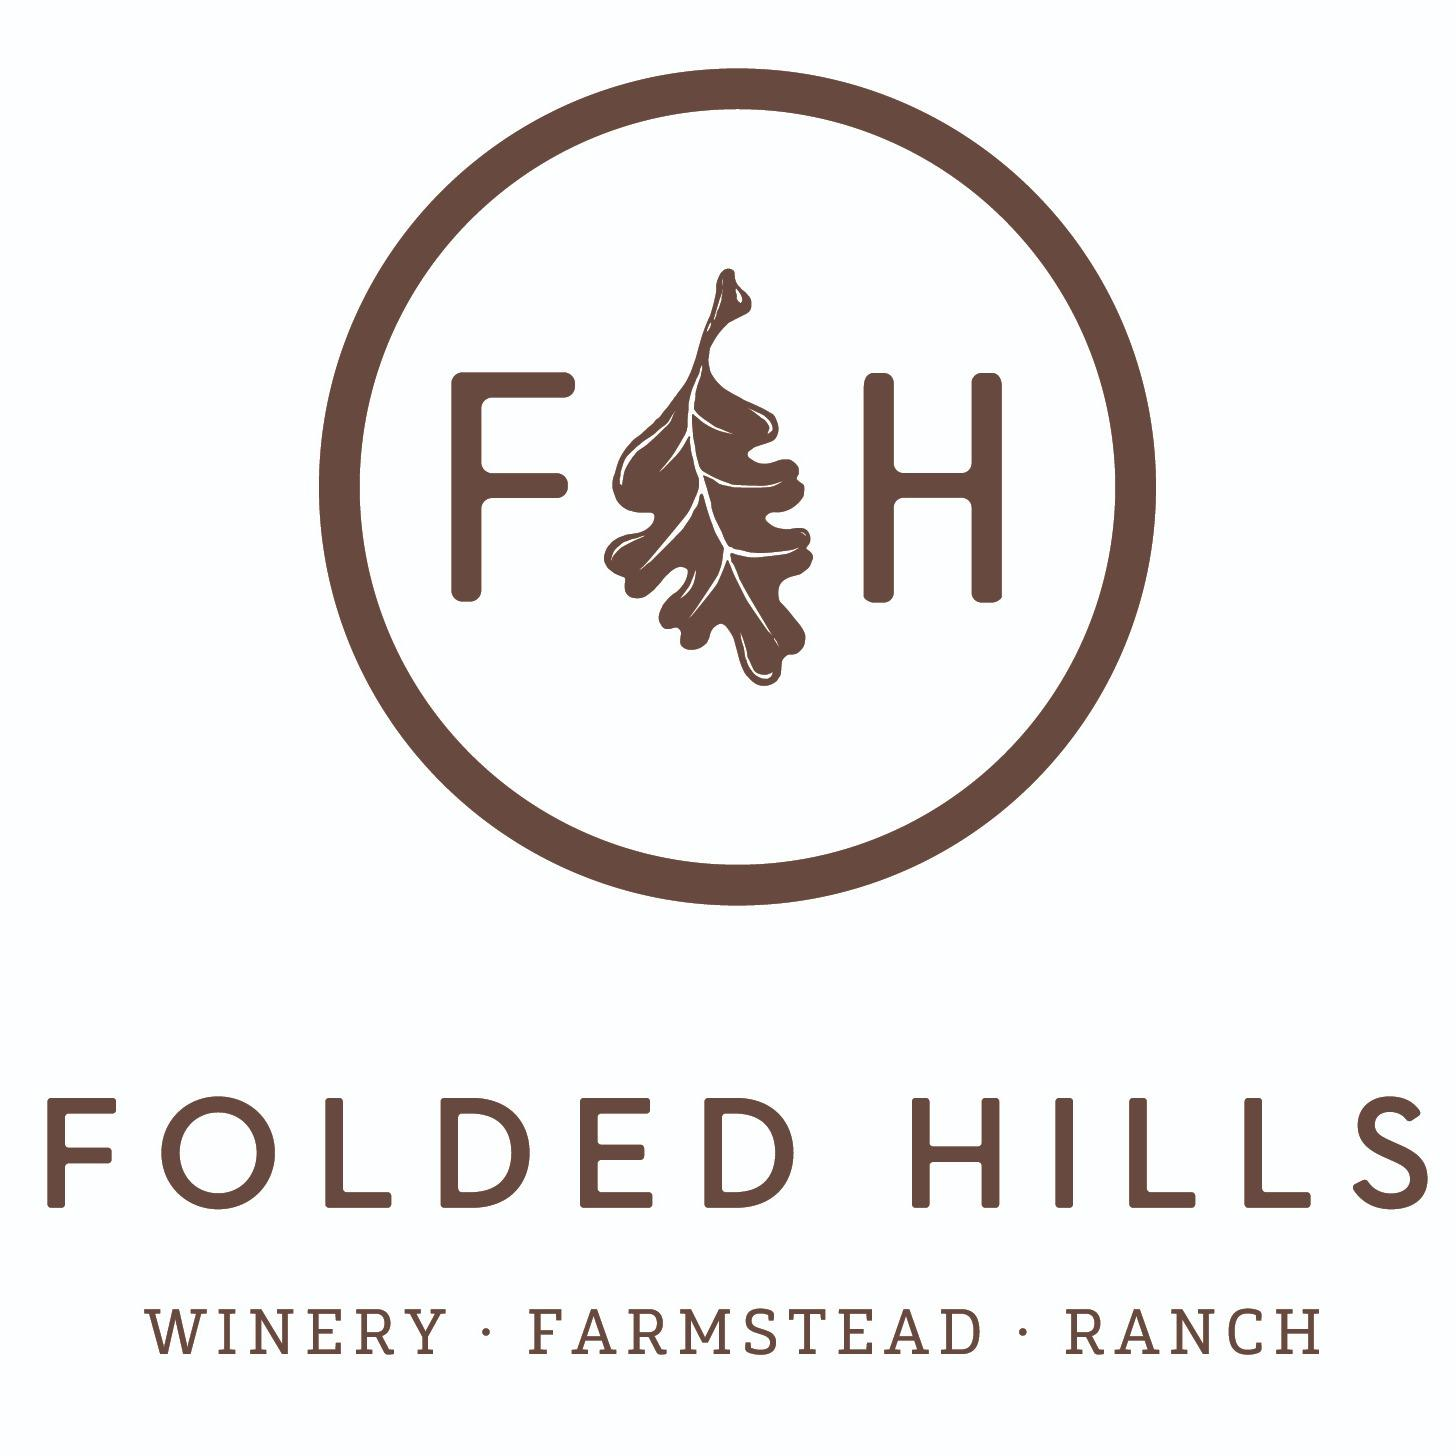 Folded Hills - Winery Ranch Farmstead image 0